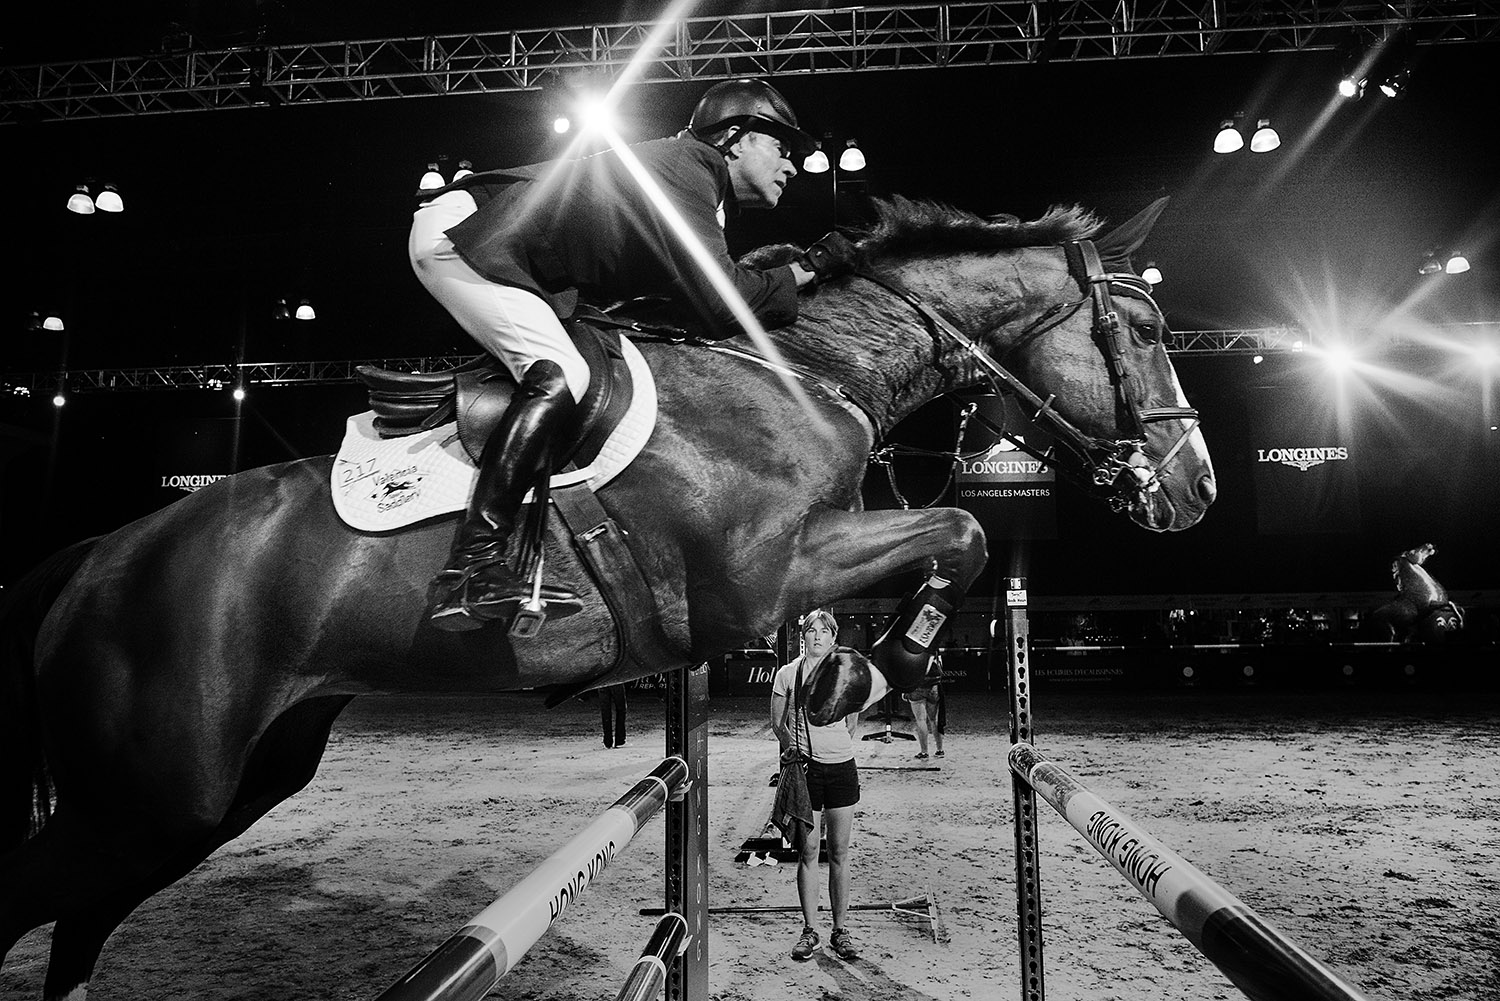 LOS ANGELES, CA - SEPTEMBER 25: A horse and its rider leap over an obstacle in the LA Convention center paddock during the LA Masters Grand Slam.